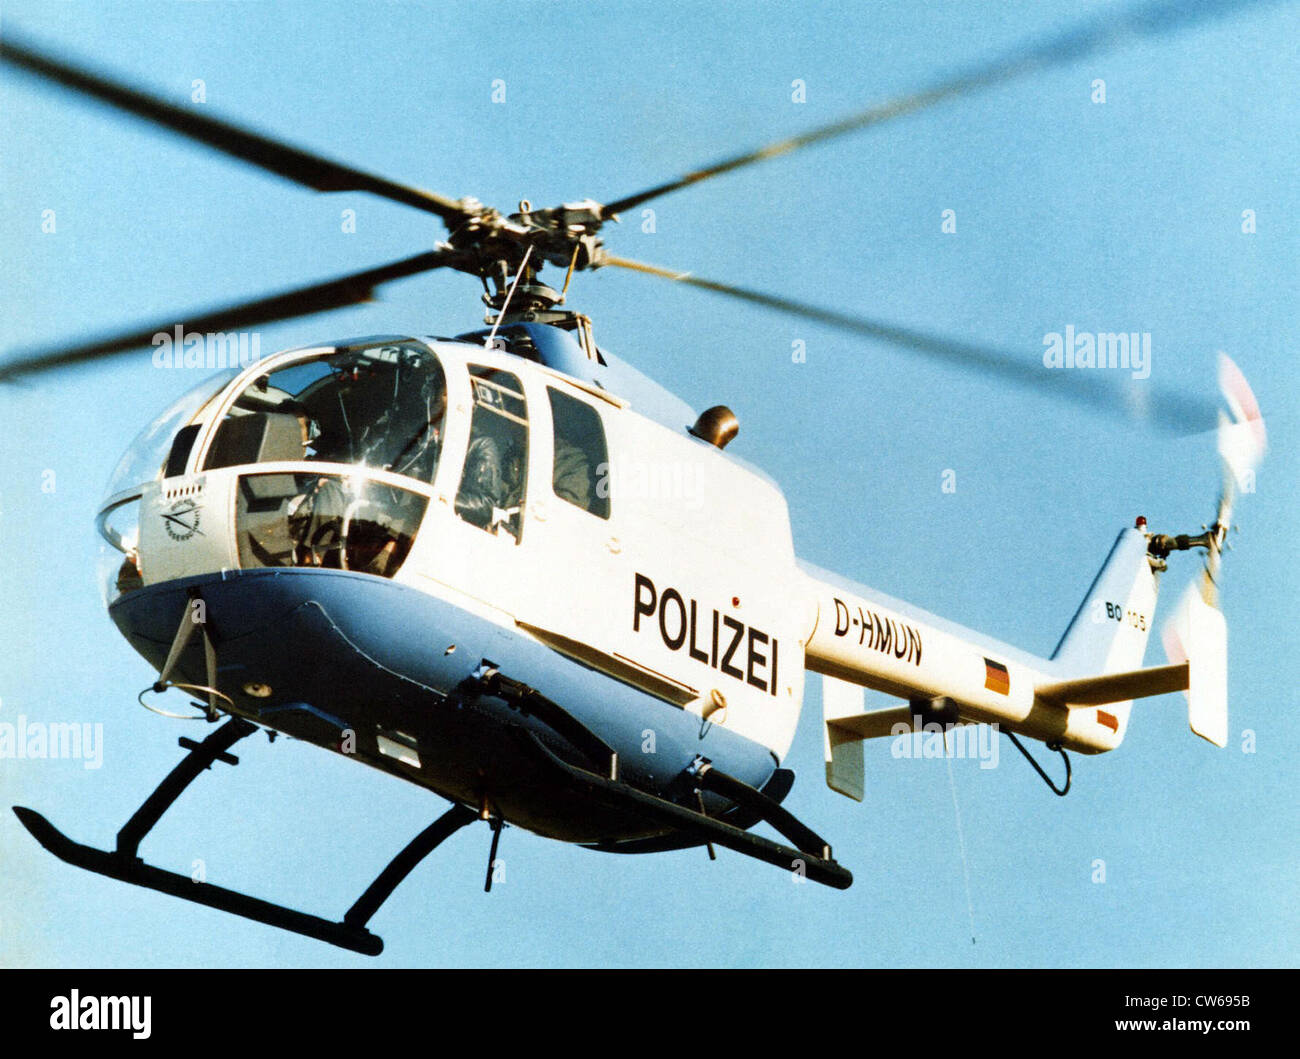 German MBB Bo-105 helicopter of the German police. - Stock Image